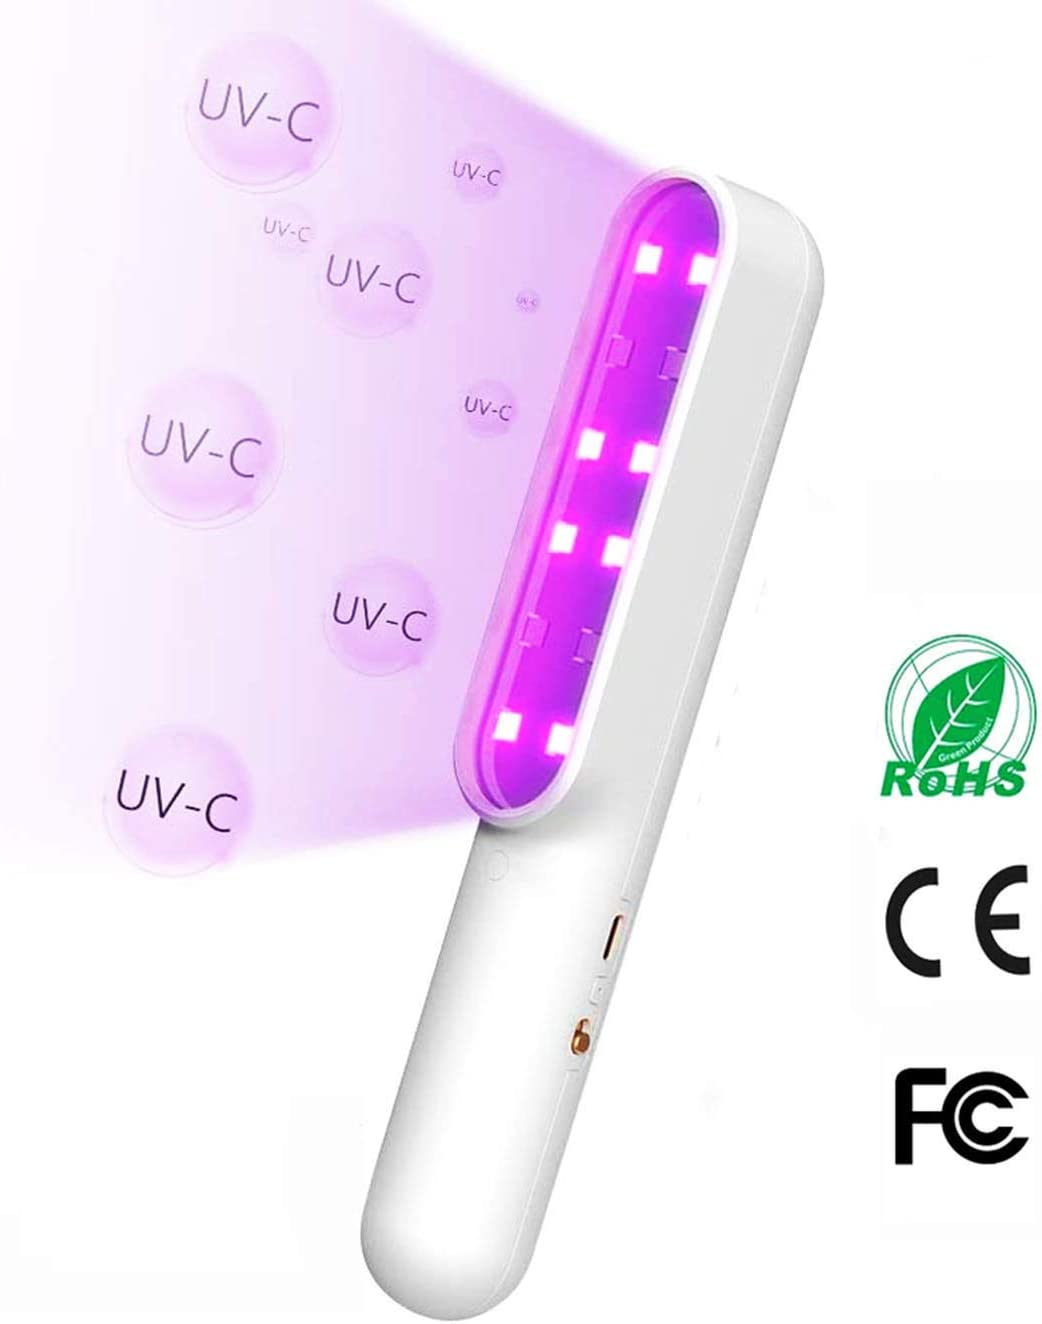 GEENO UV Light Sanitizer Wand USB Charging Sterilizer for Home Hotel Toilet Car Pet Disinfecting Cleaner,White